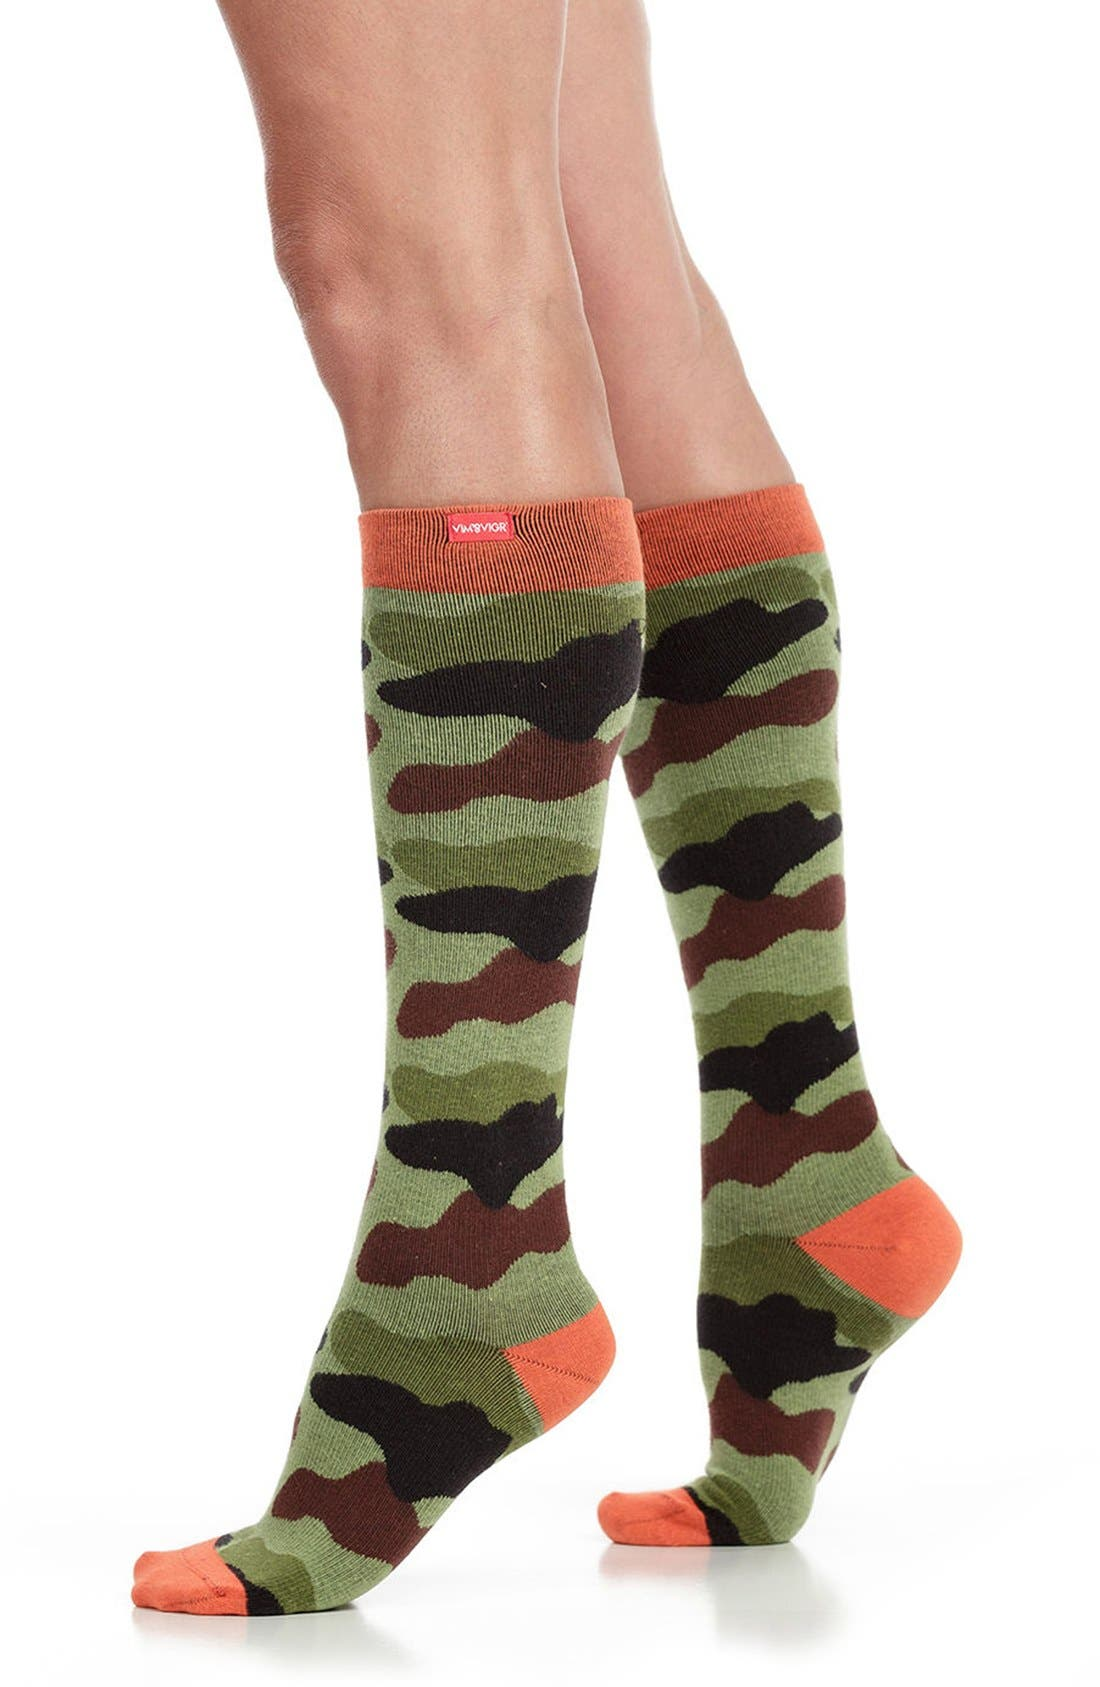 Camouflage Compression Trouser Socks,                             Main thumbnail 1, color,                             300